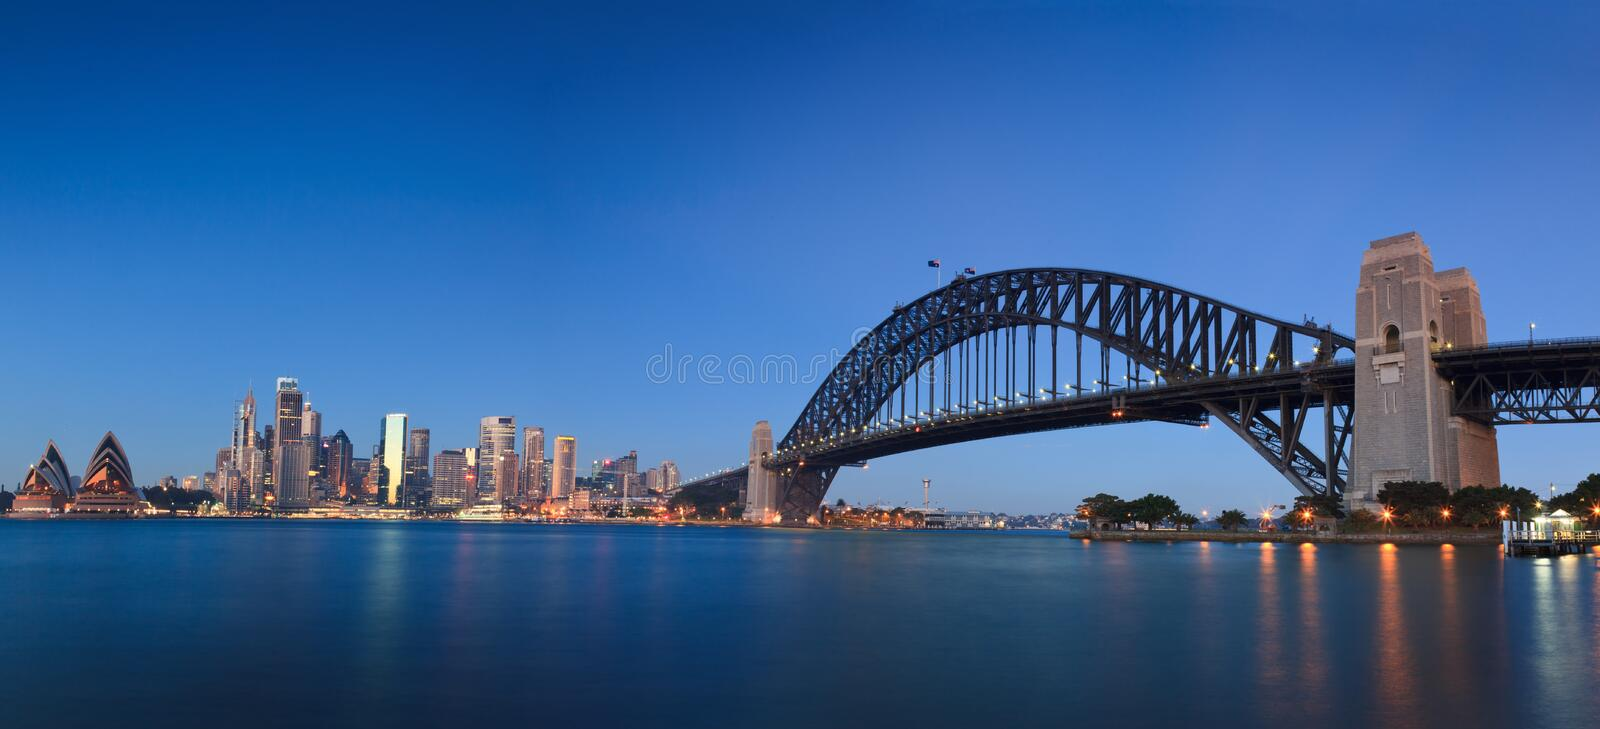 City Opera Bridge Sunrise Pan Editorial Stock Image